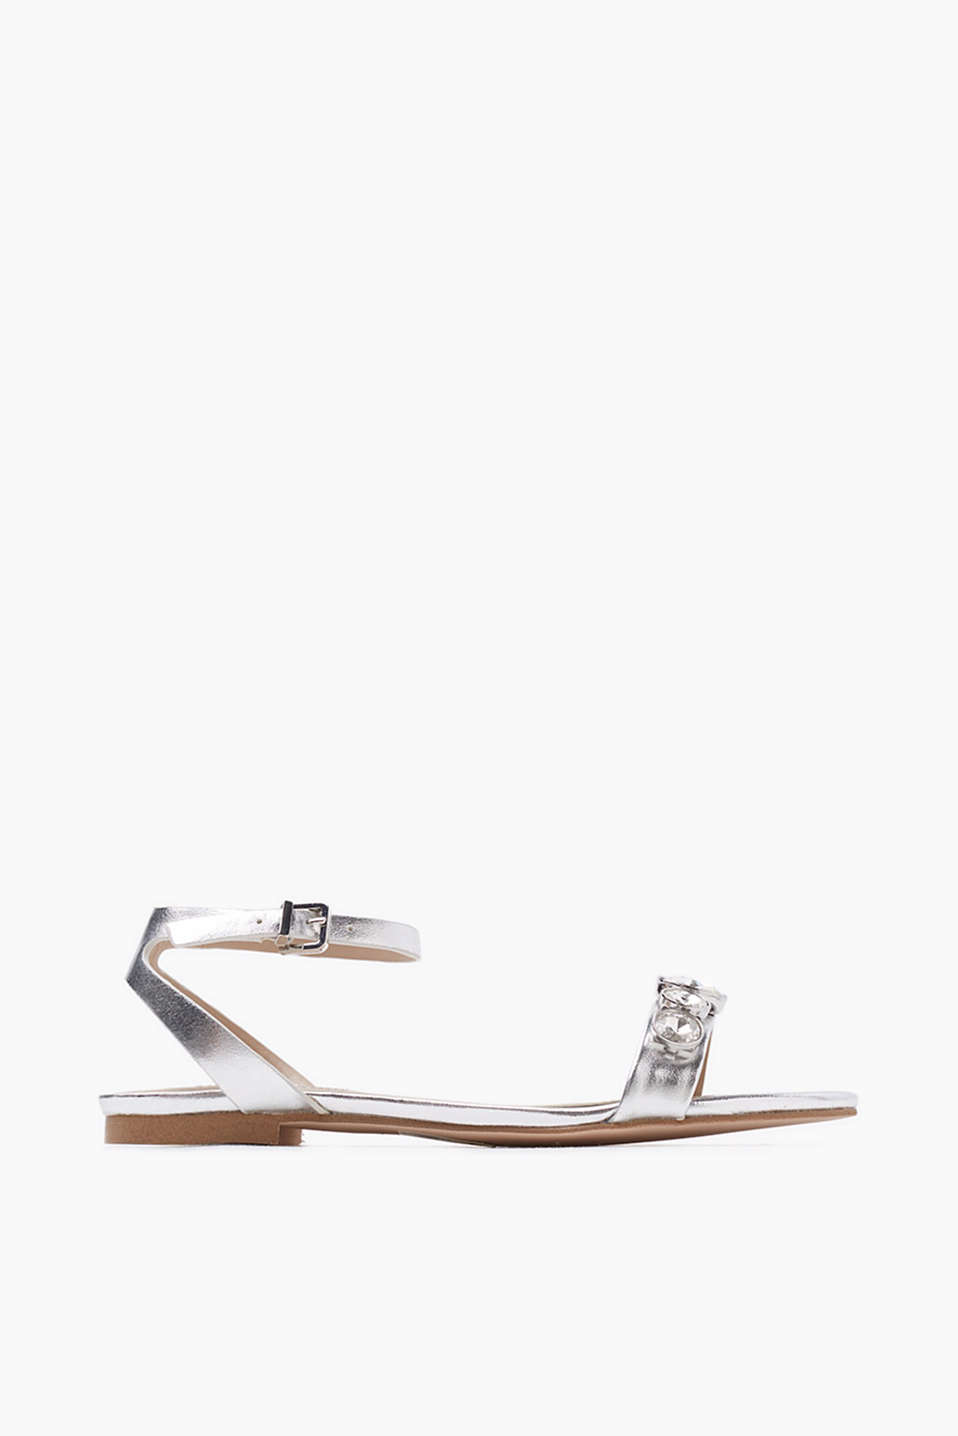 We love flats! Flat sandals with ankle straps